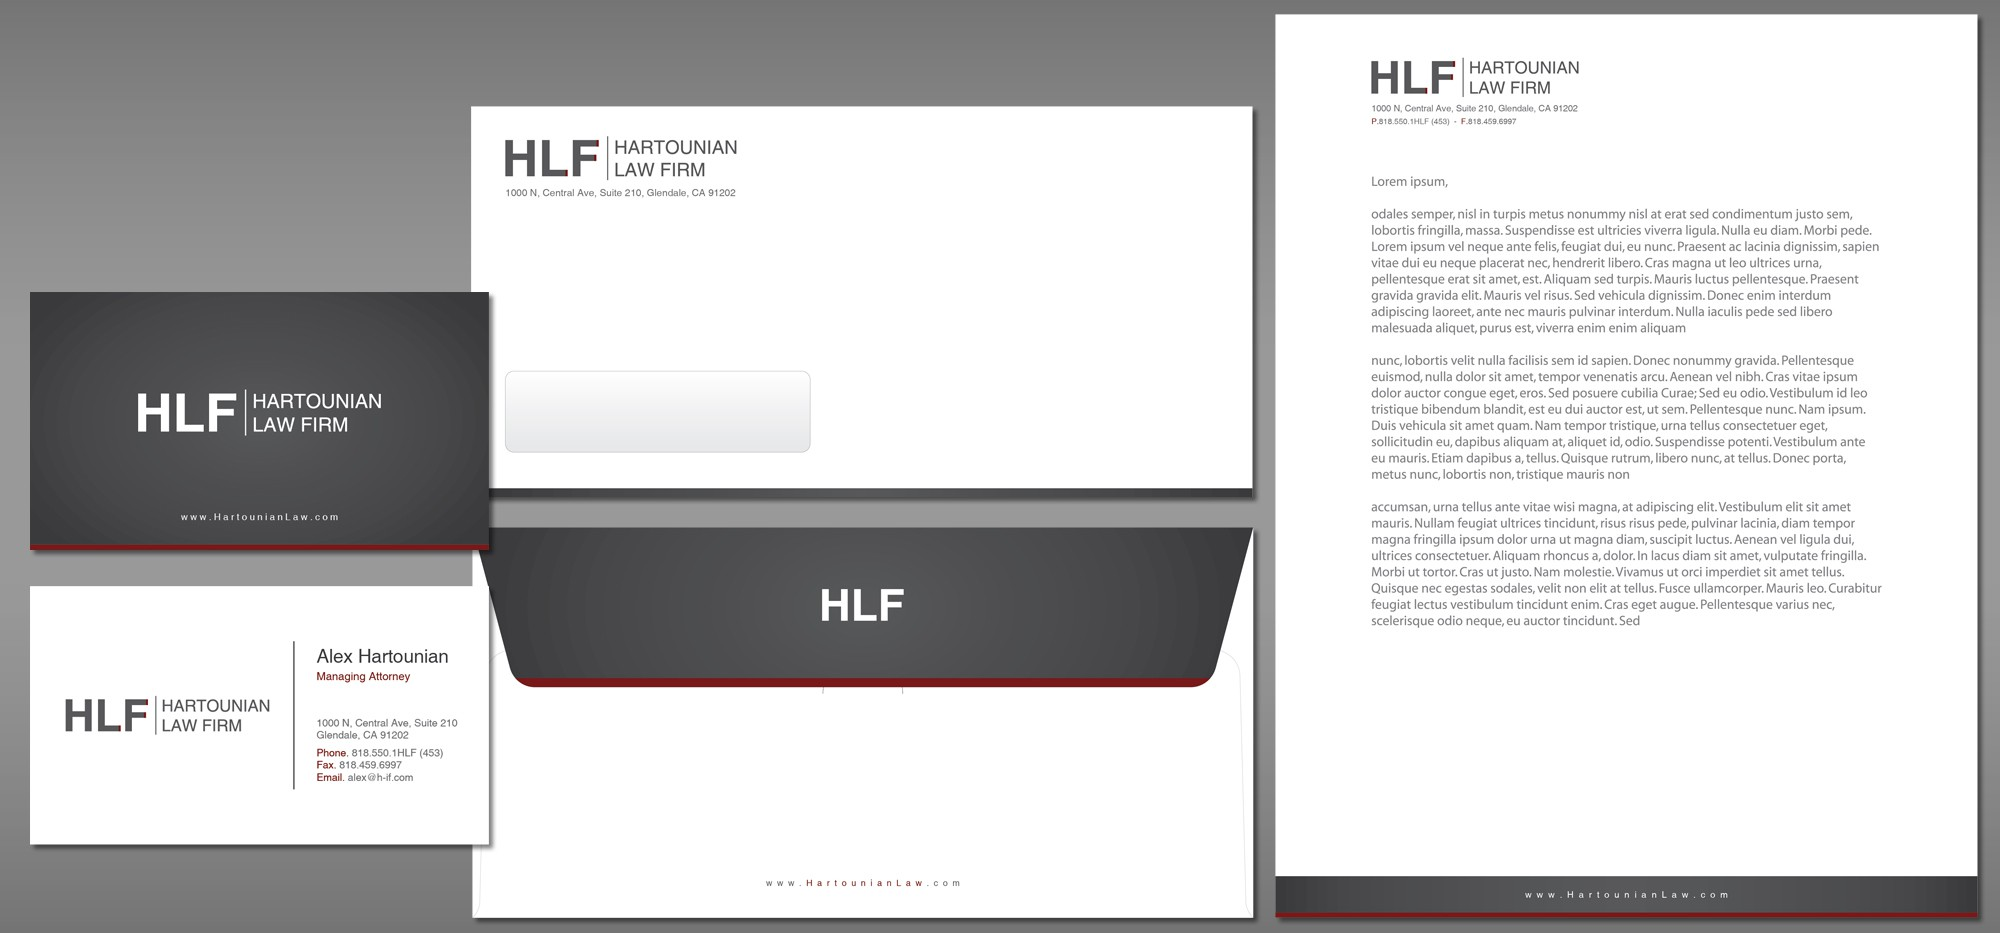 Hartounian Law Firm needs a new stationery